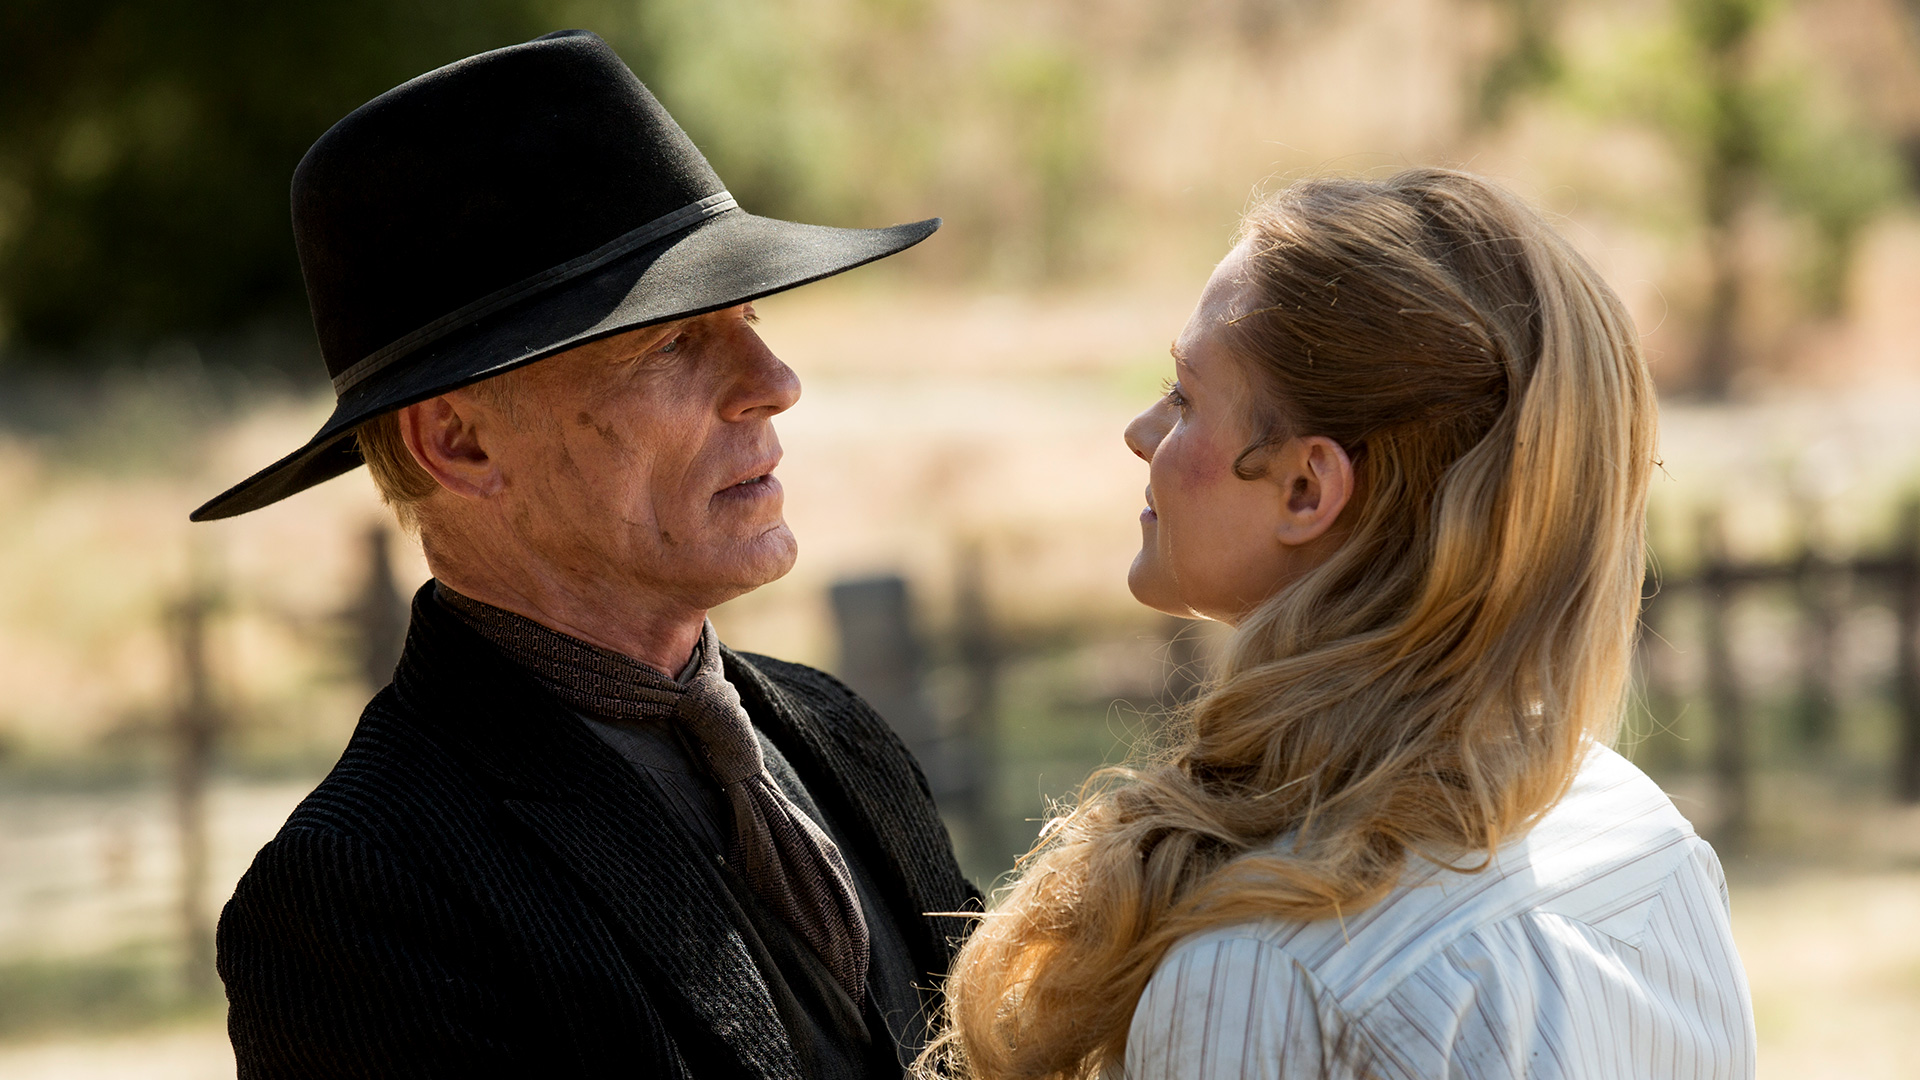 ed-harris-man-in-black-evan-rachel-wood-dolores-westworld-the-bicameral-mind-episode-110